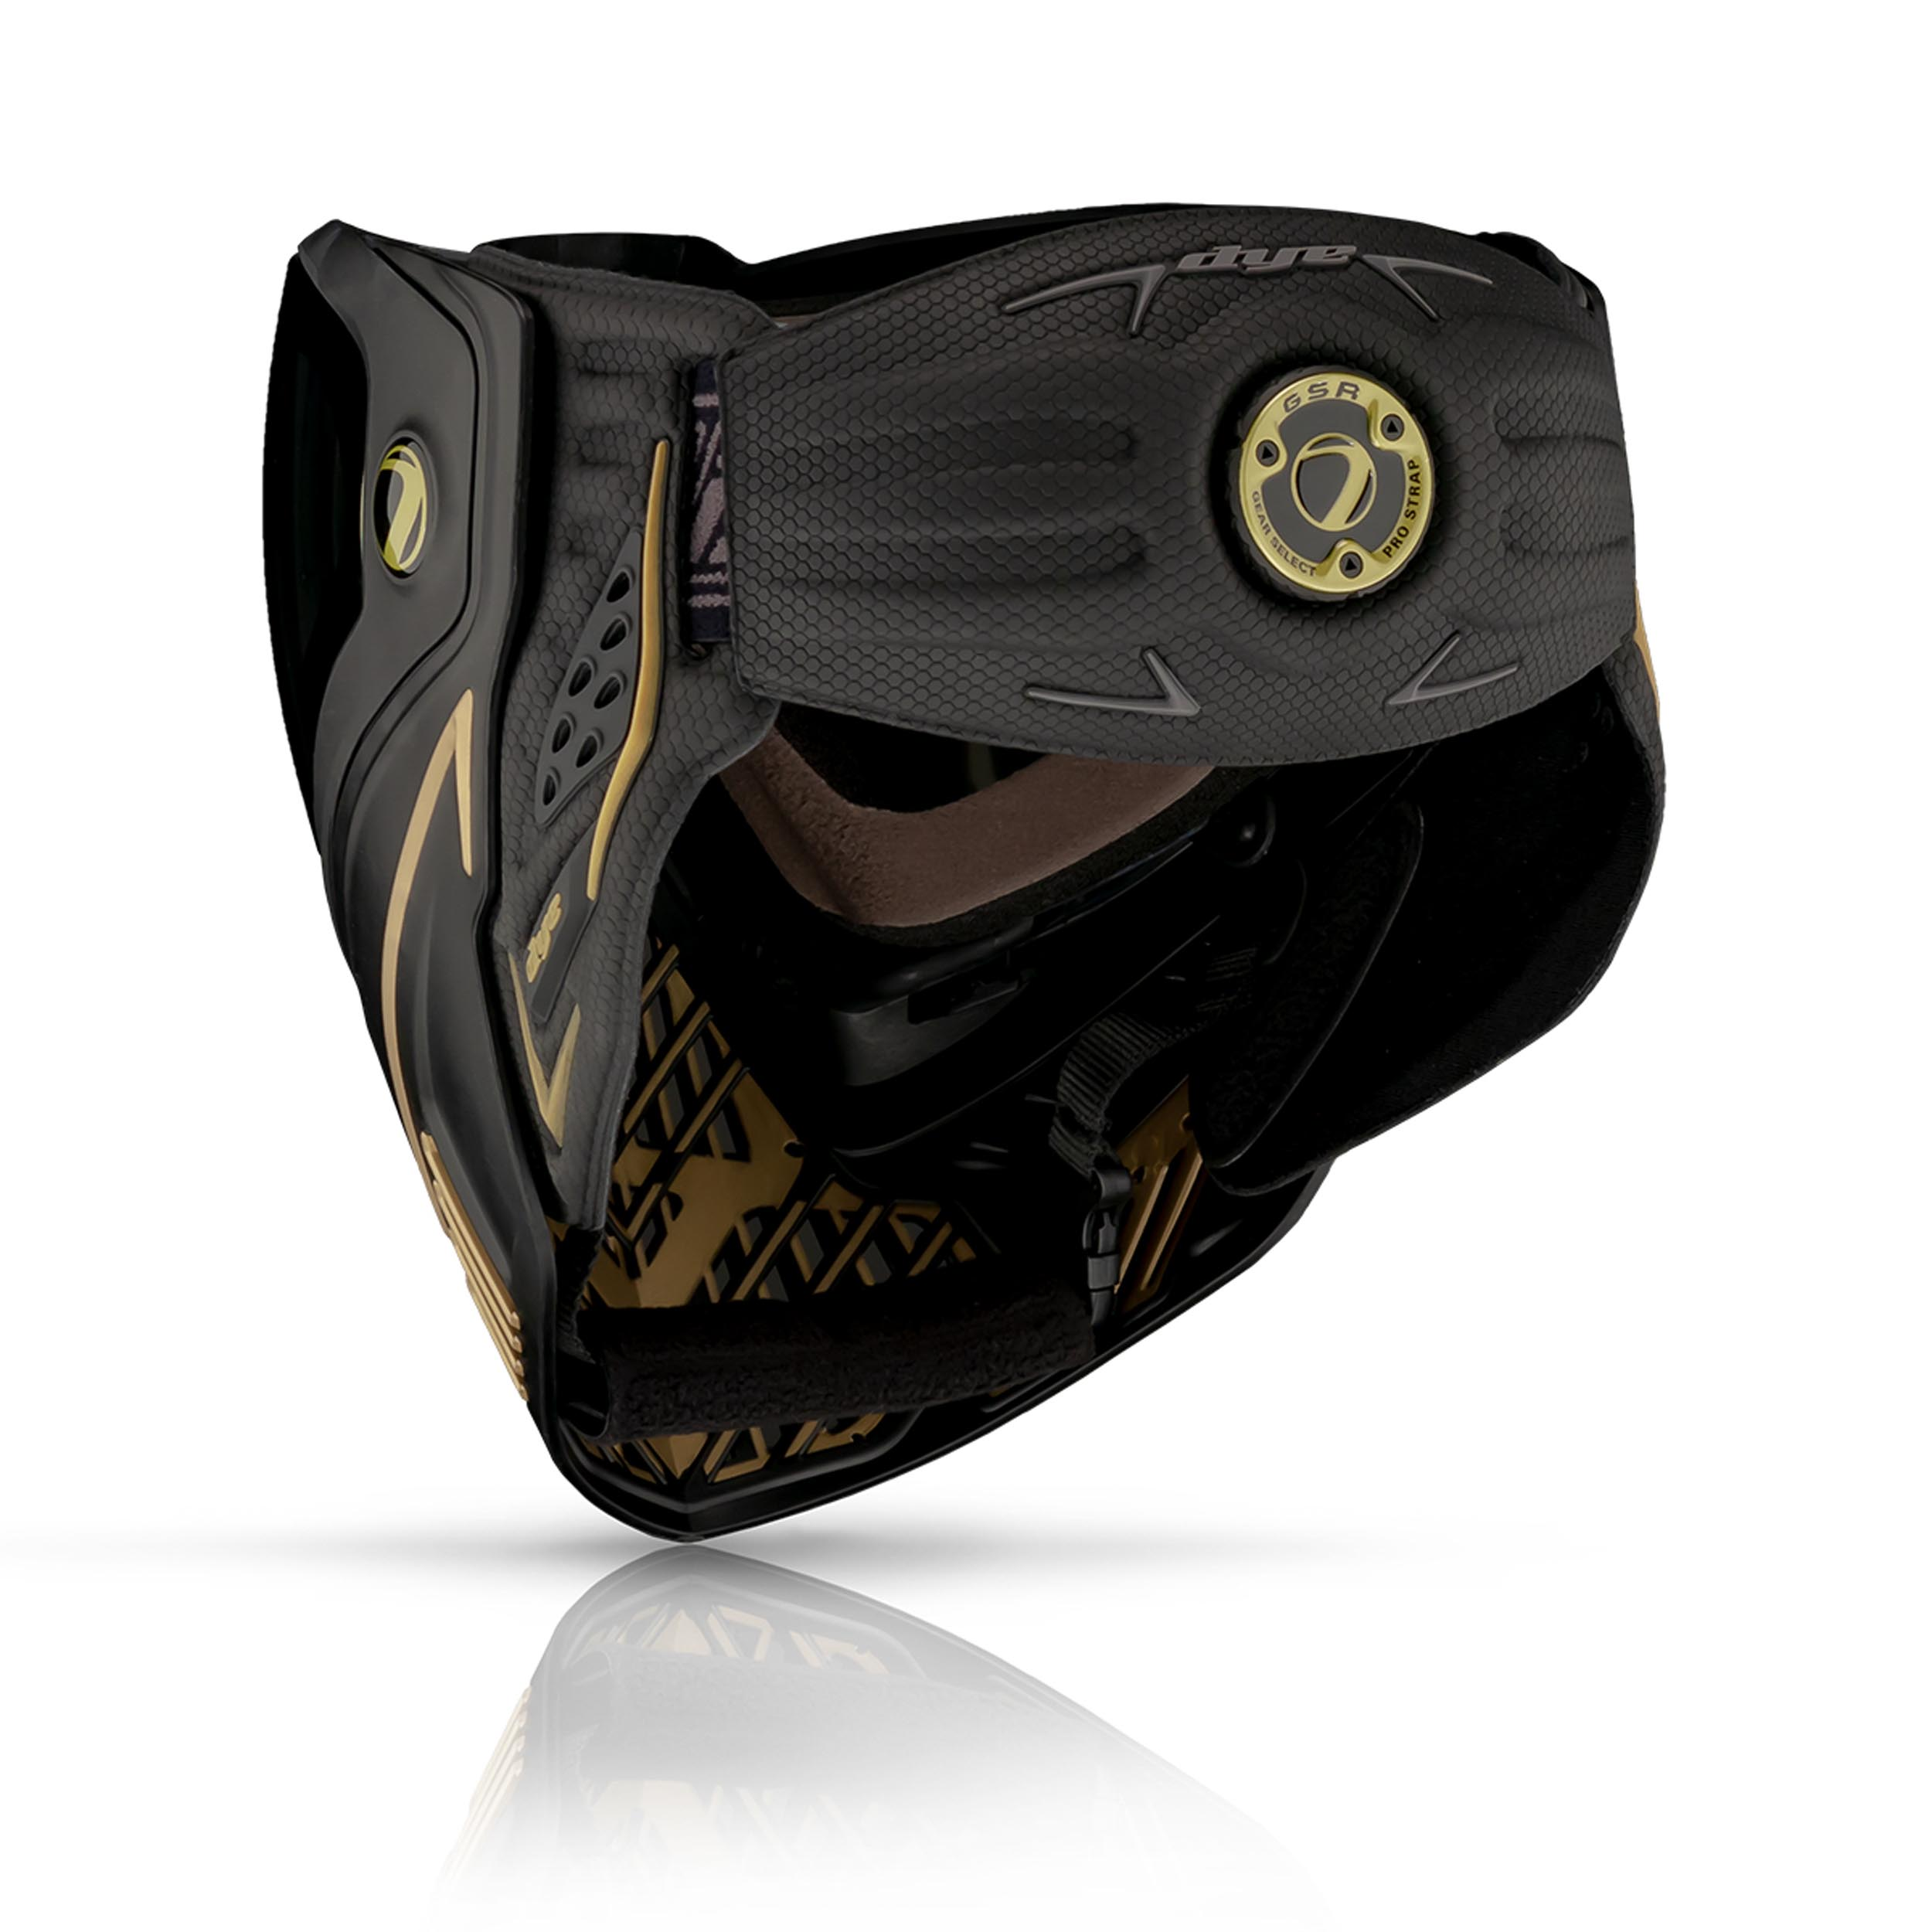 MAS470-3 Dye I5 thermal goggle Onyx Black Gold 2.0 - MAS473